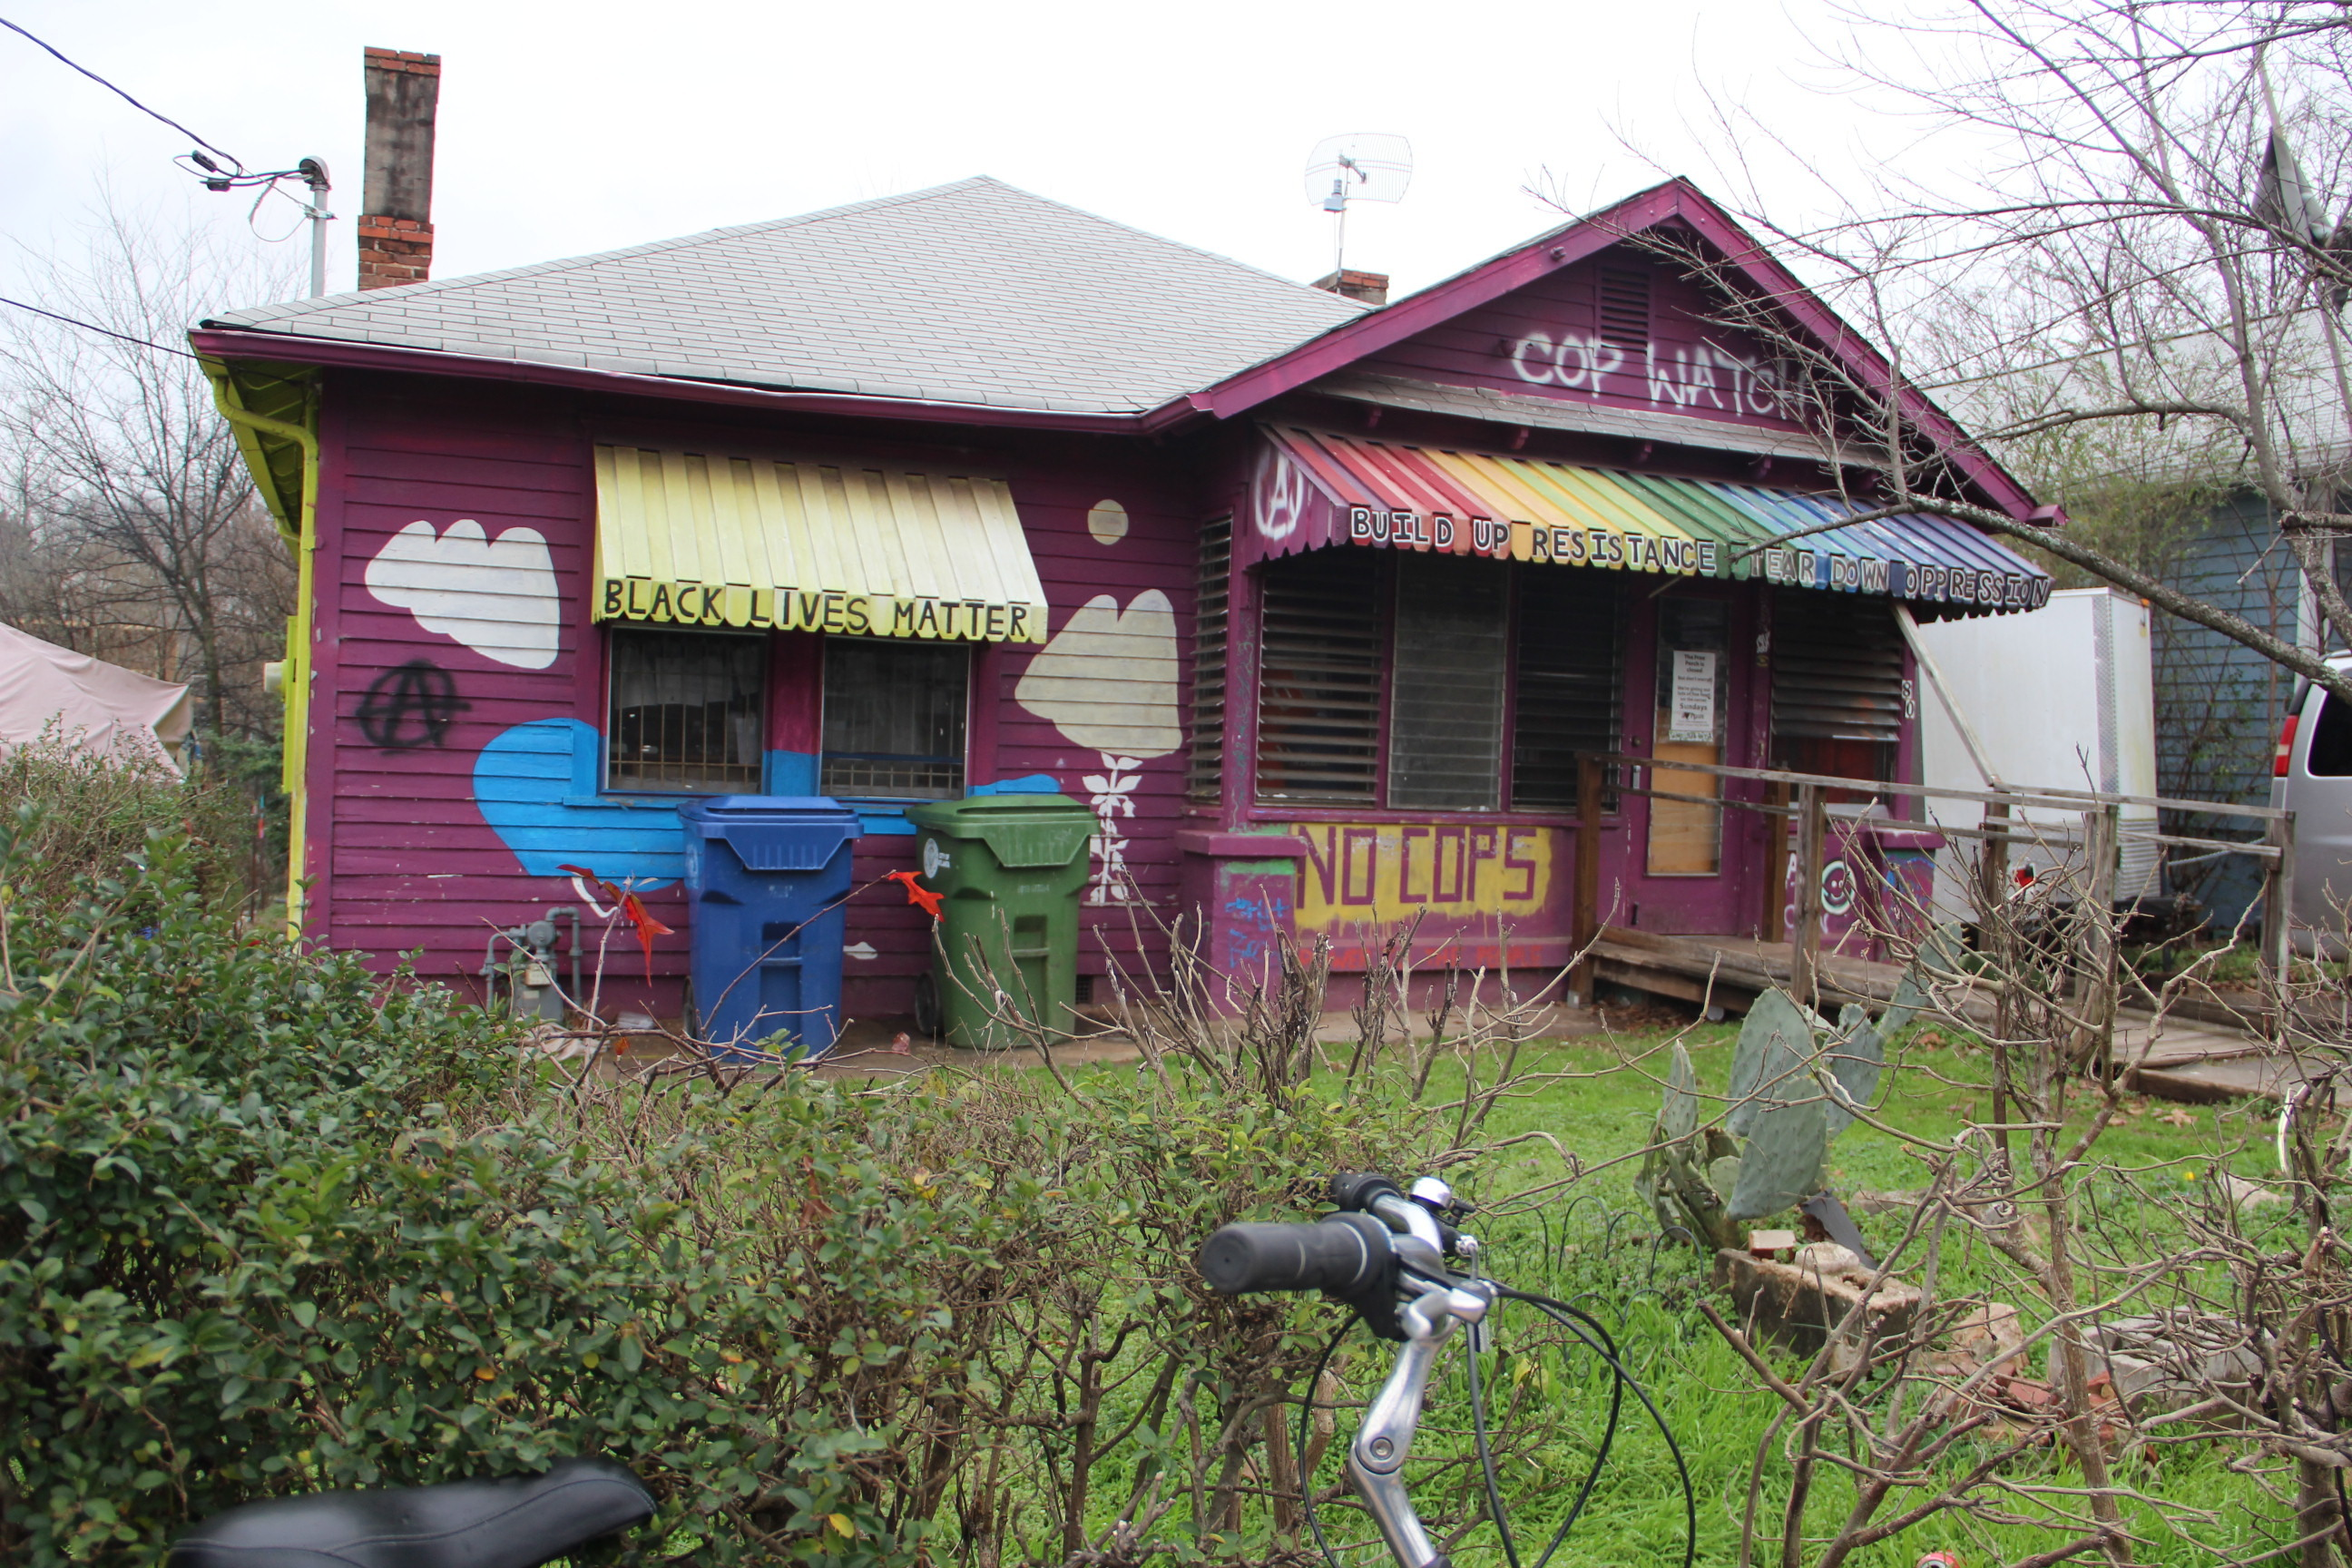 A purple bungalow painted with yellow and rainbow awnings.